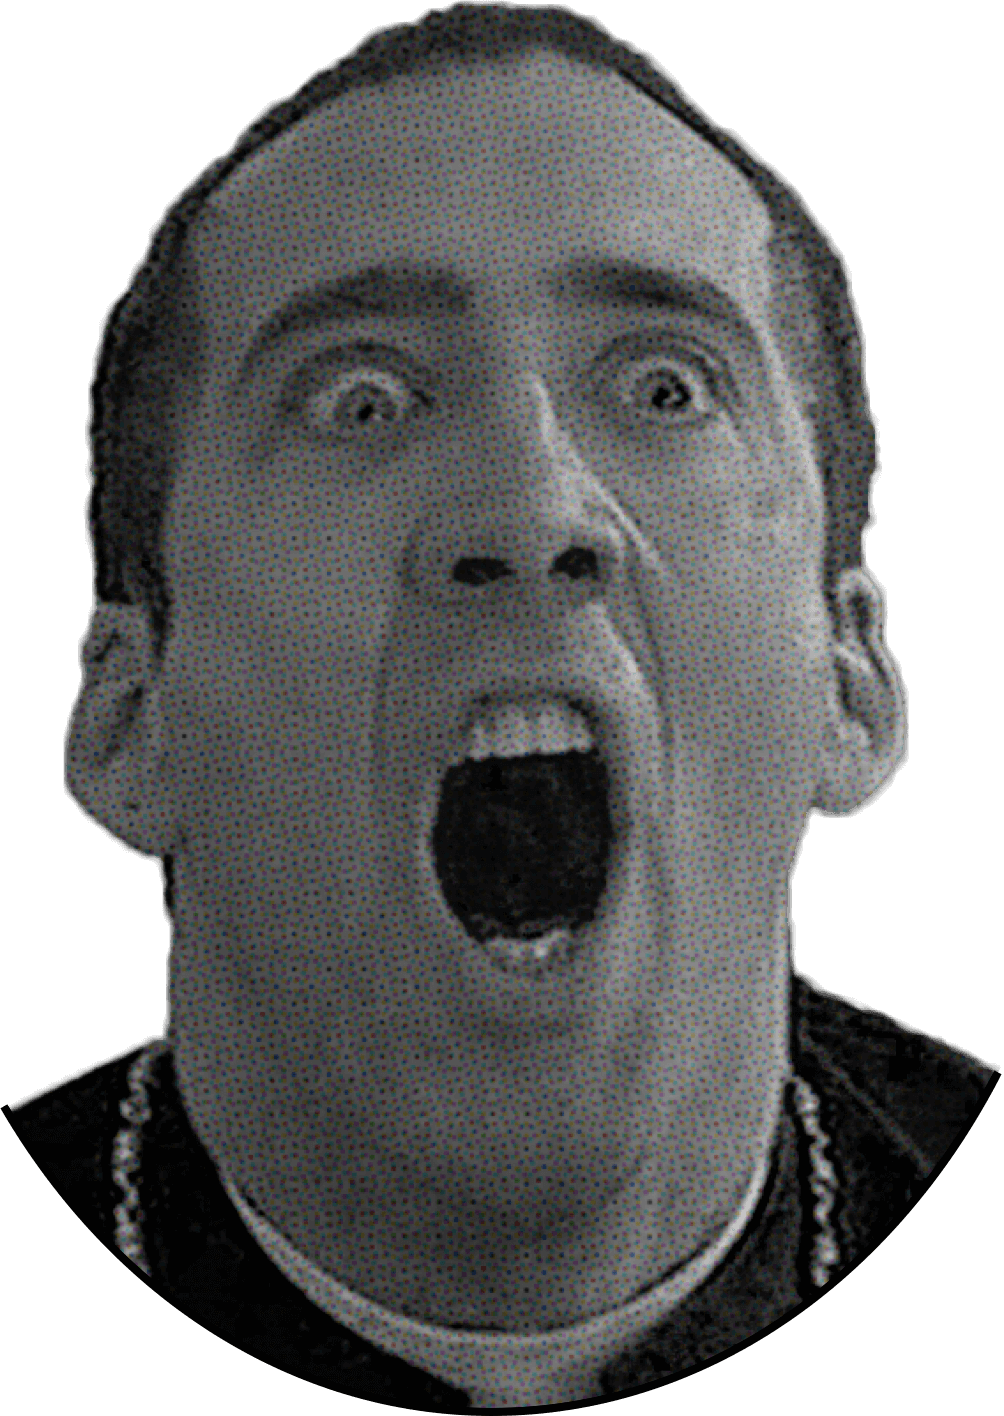 Nicolas cage face png. The nic rage page